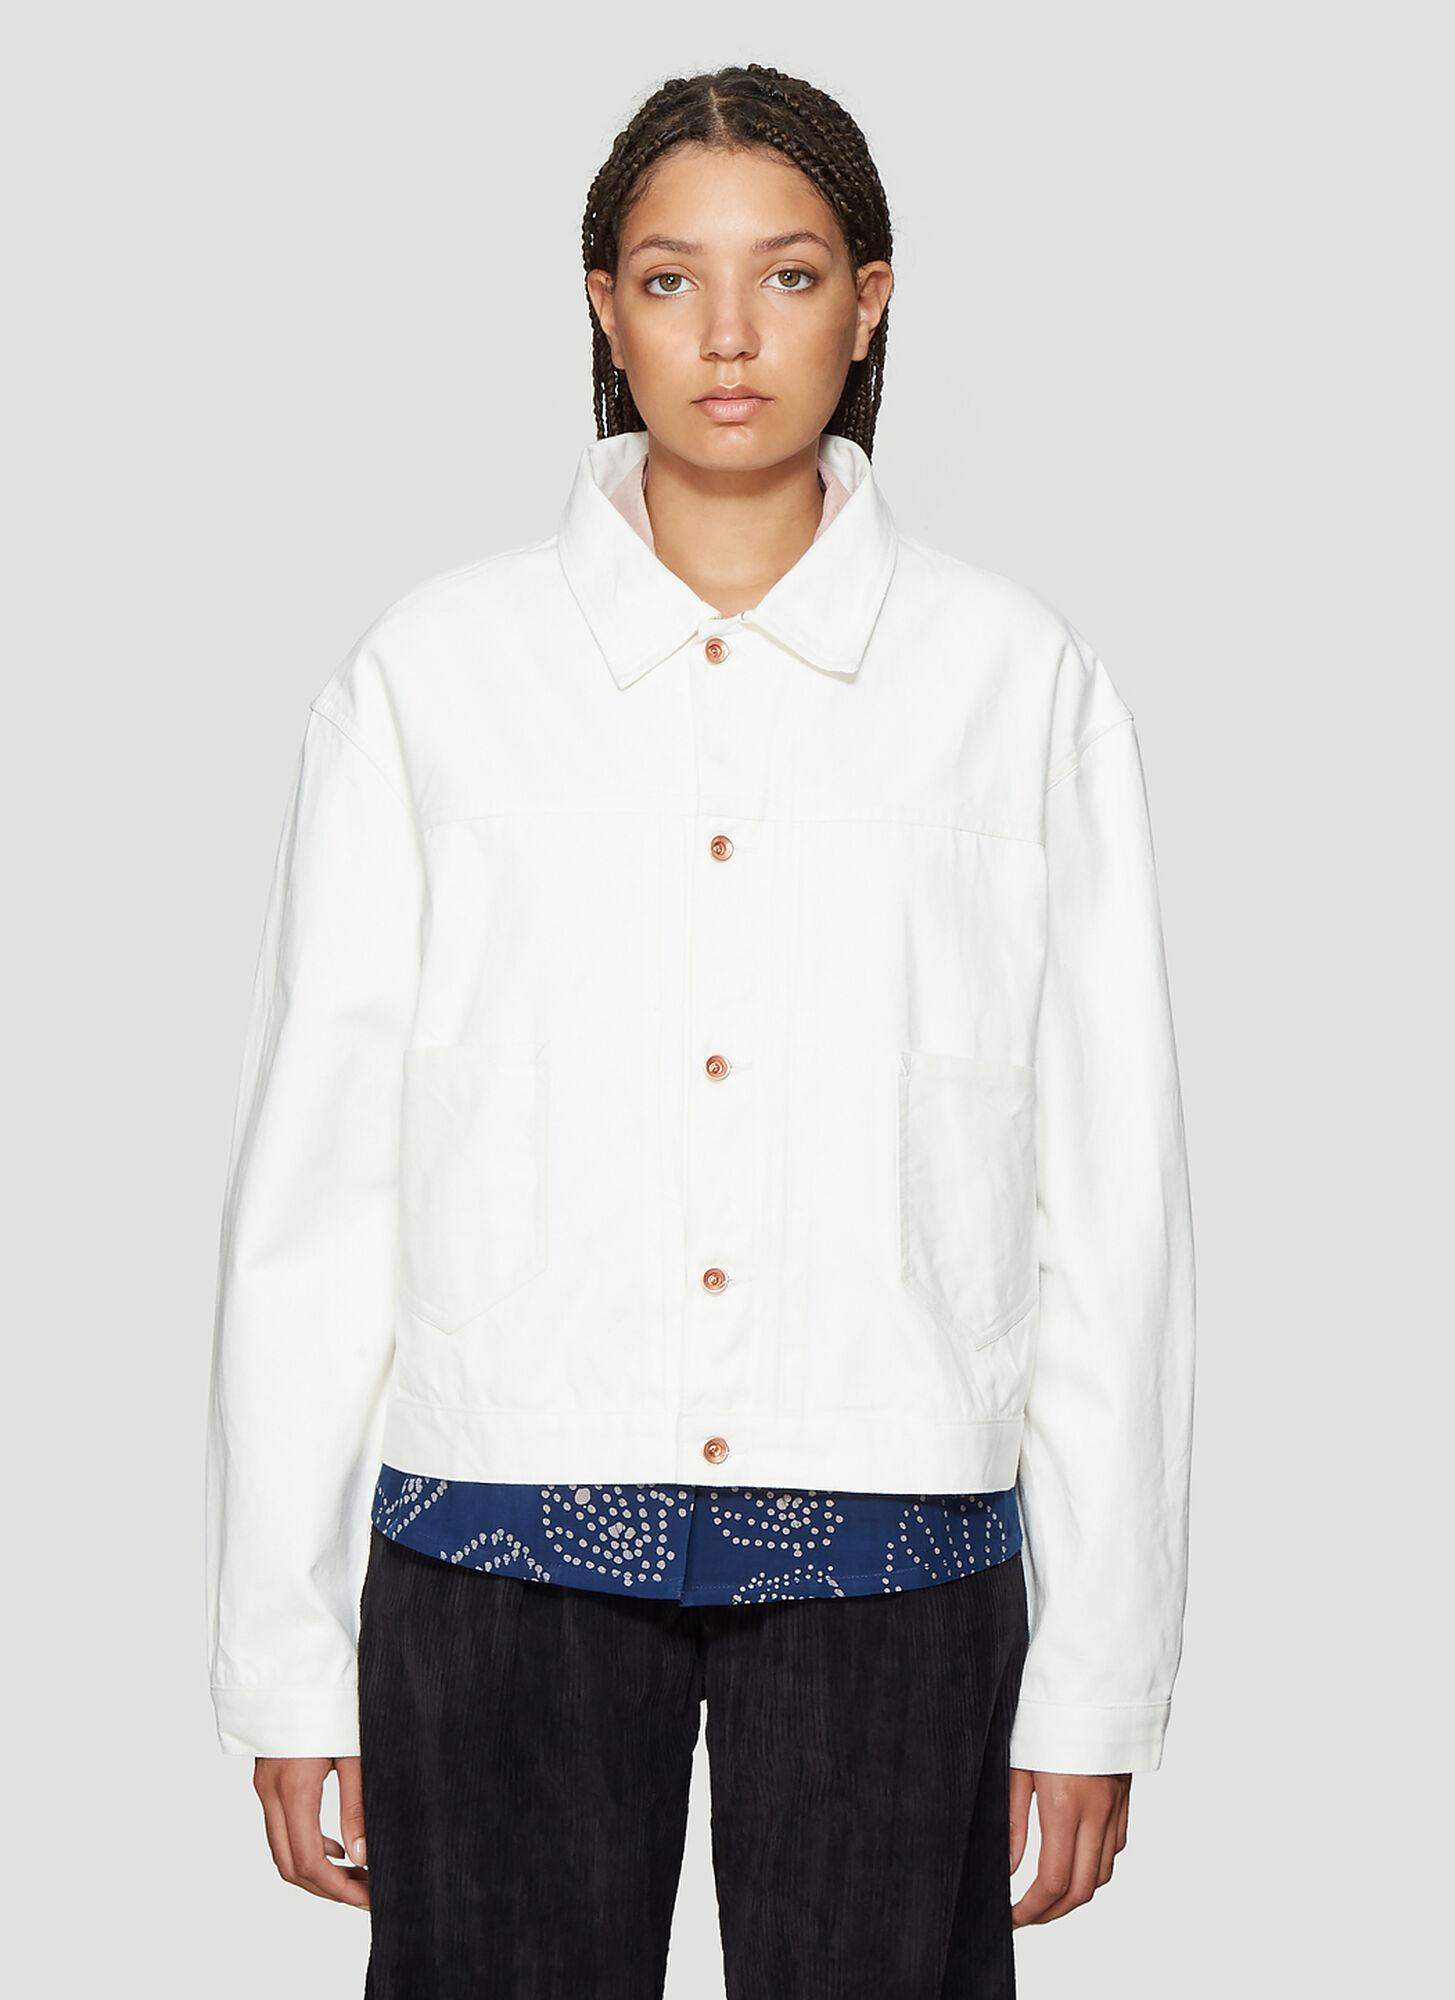 STORY mfg. Sundae Oversized Jacket in White